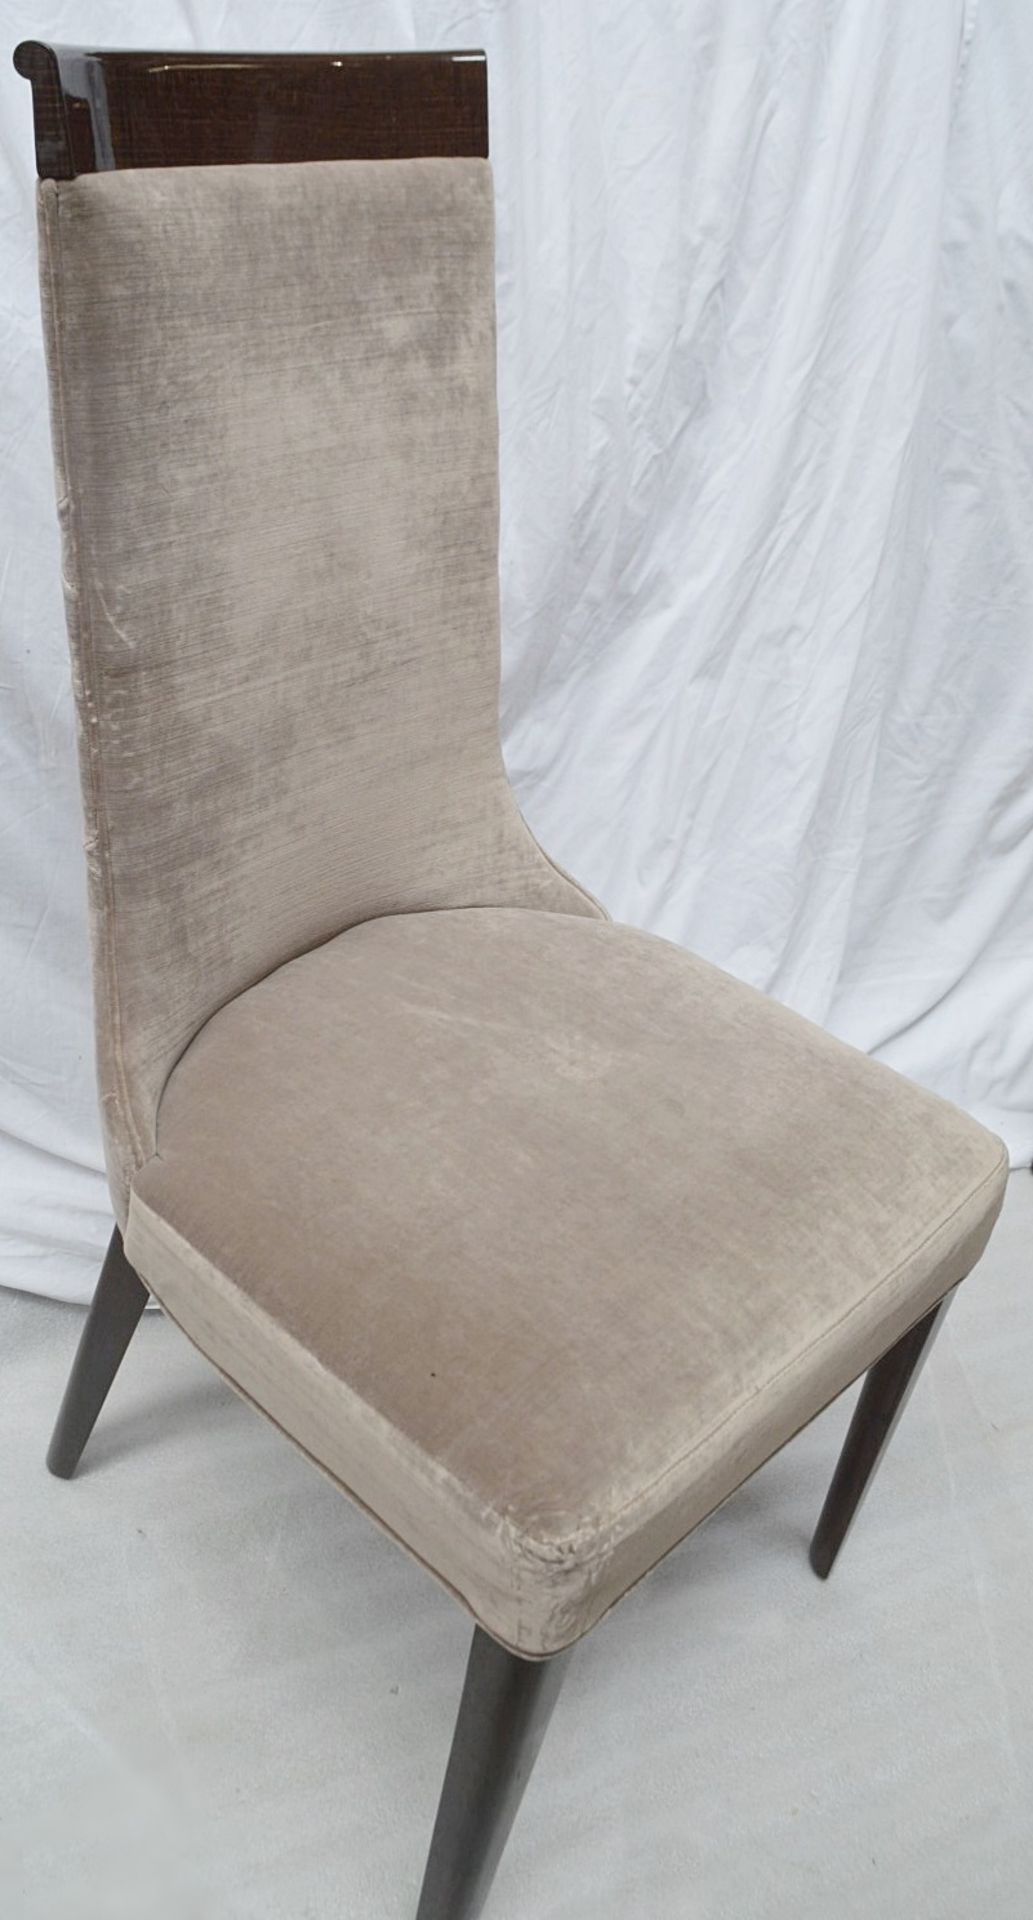 4 x GIORGIO Coliseum Velvet Upholstered Button Back Side Chairs With A Brazilian Rosewood Finish - - Image 7 of 11